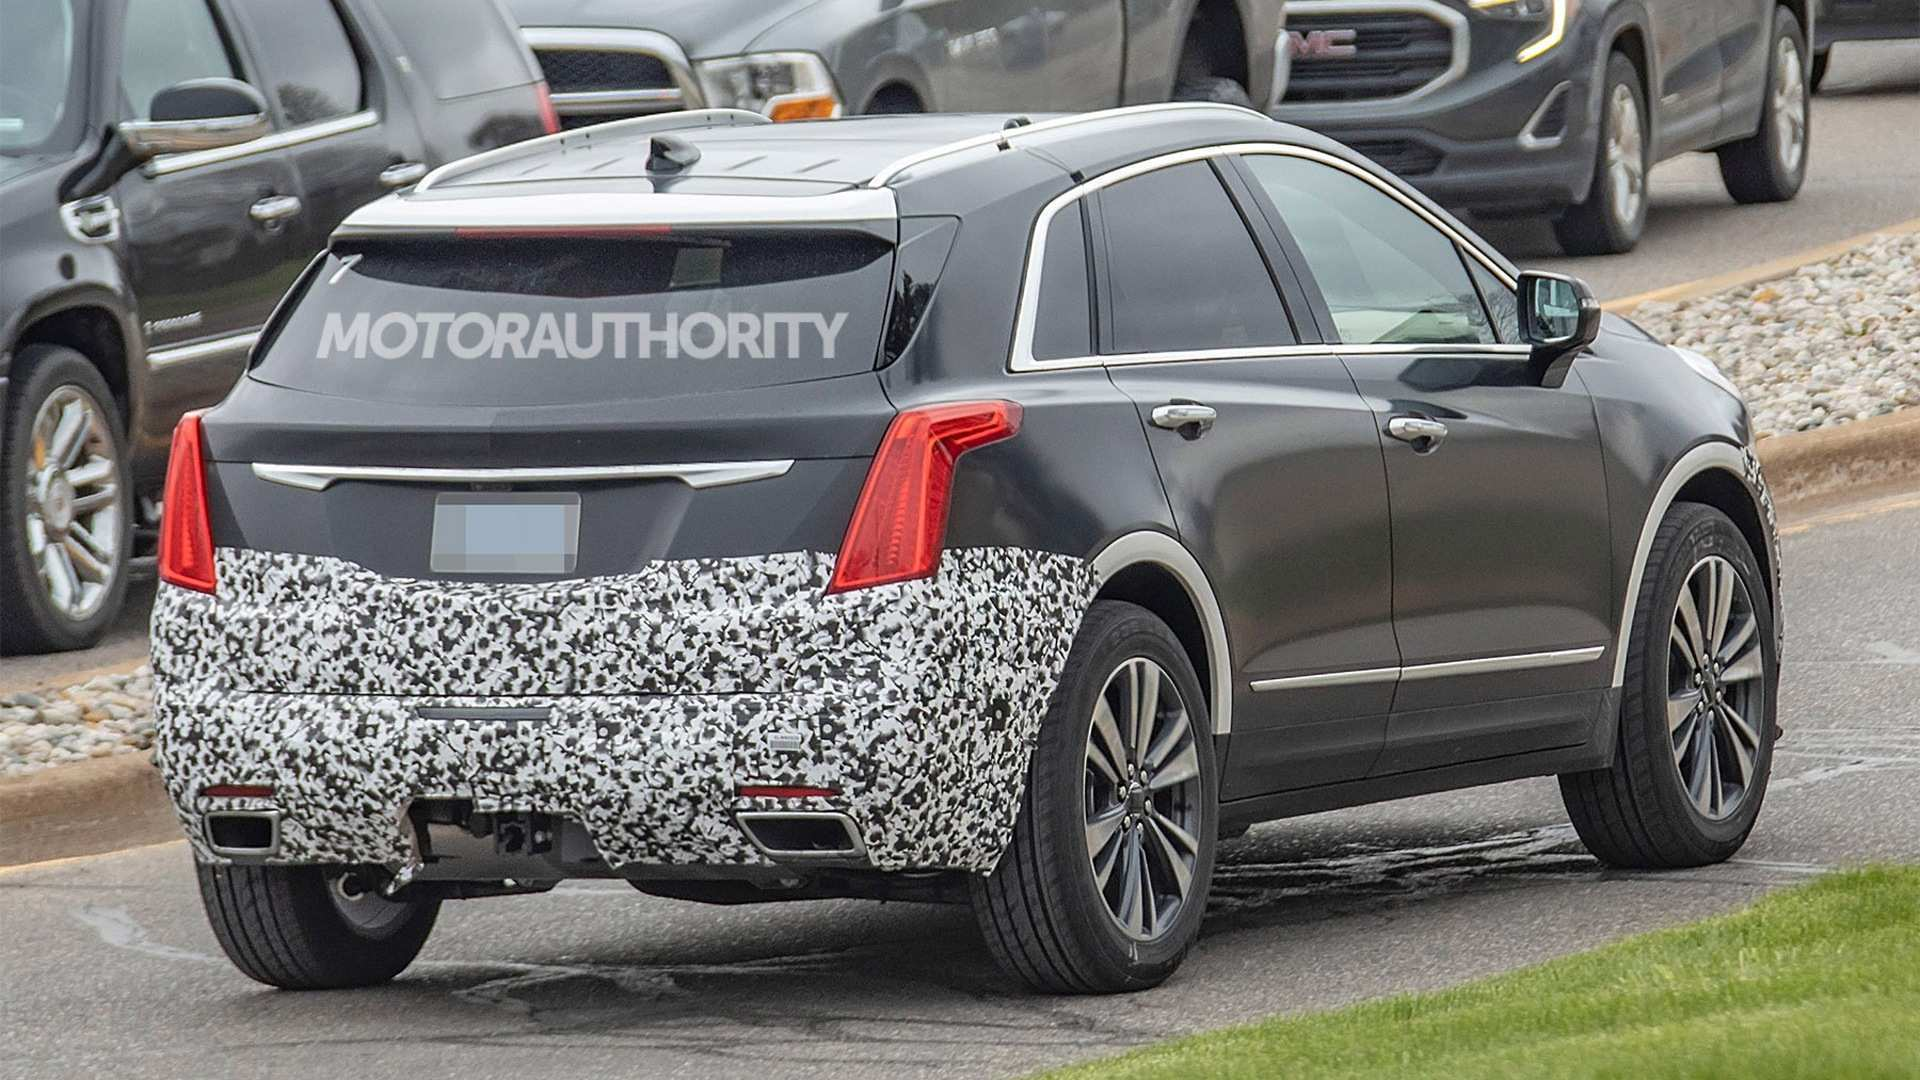 85 New 2020 Spy Shots Cadillac Xt5 Redesign